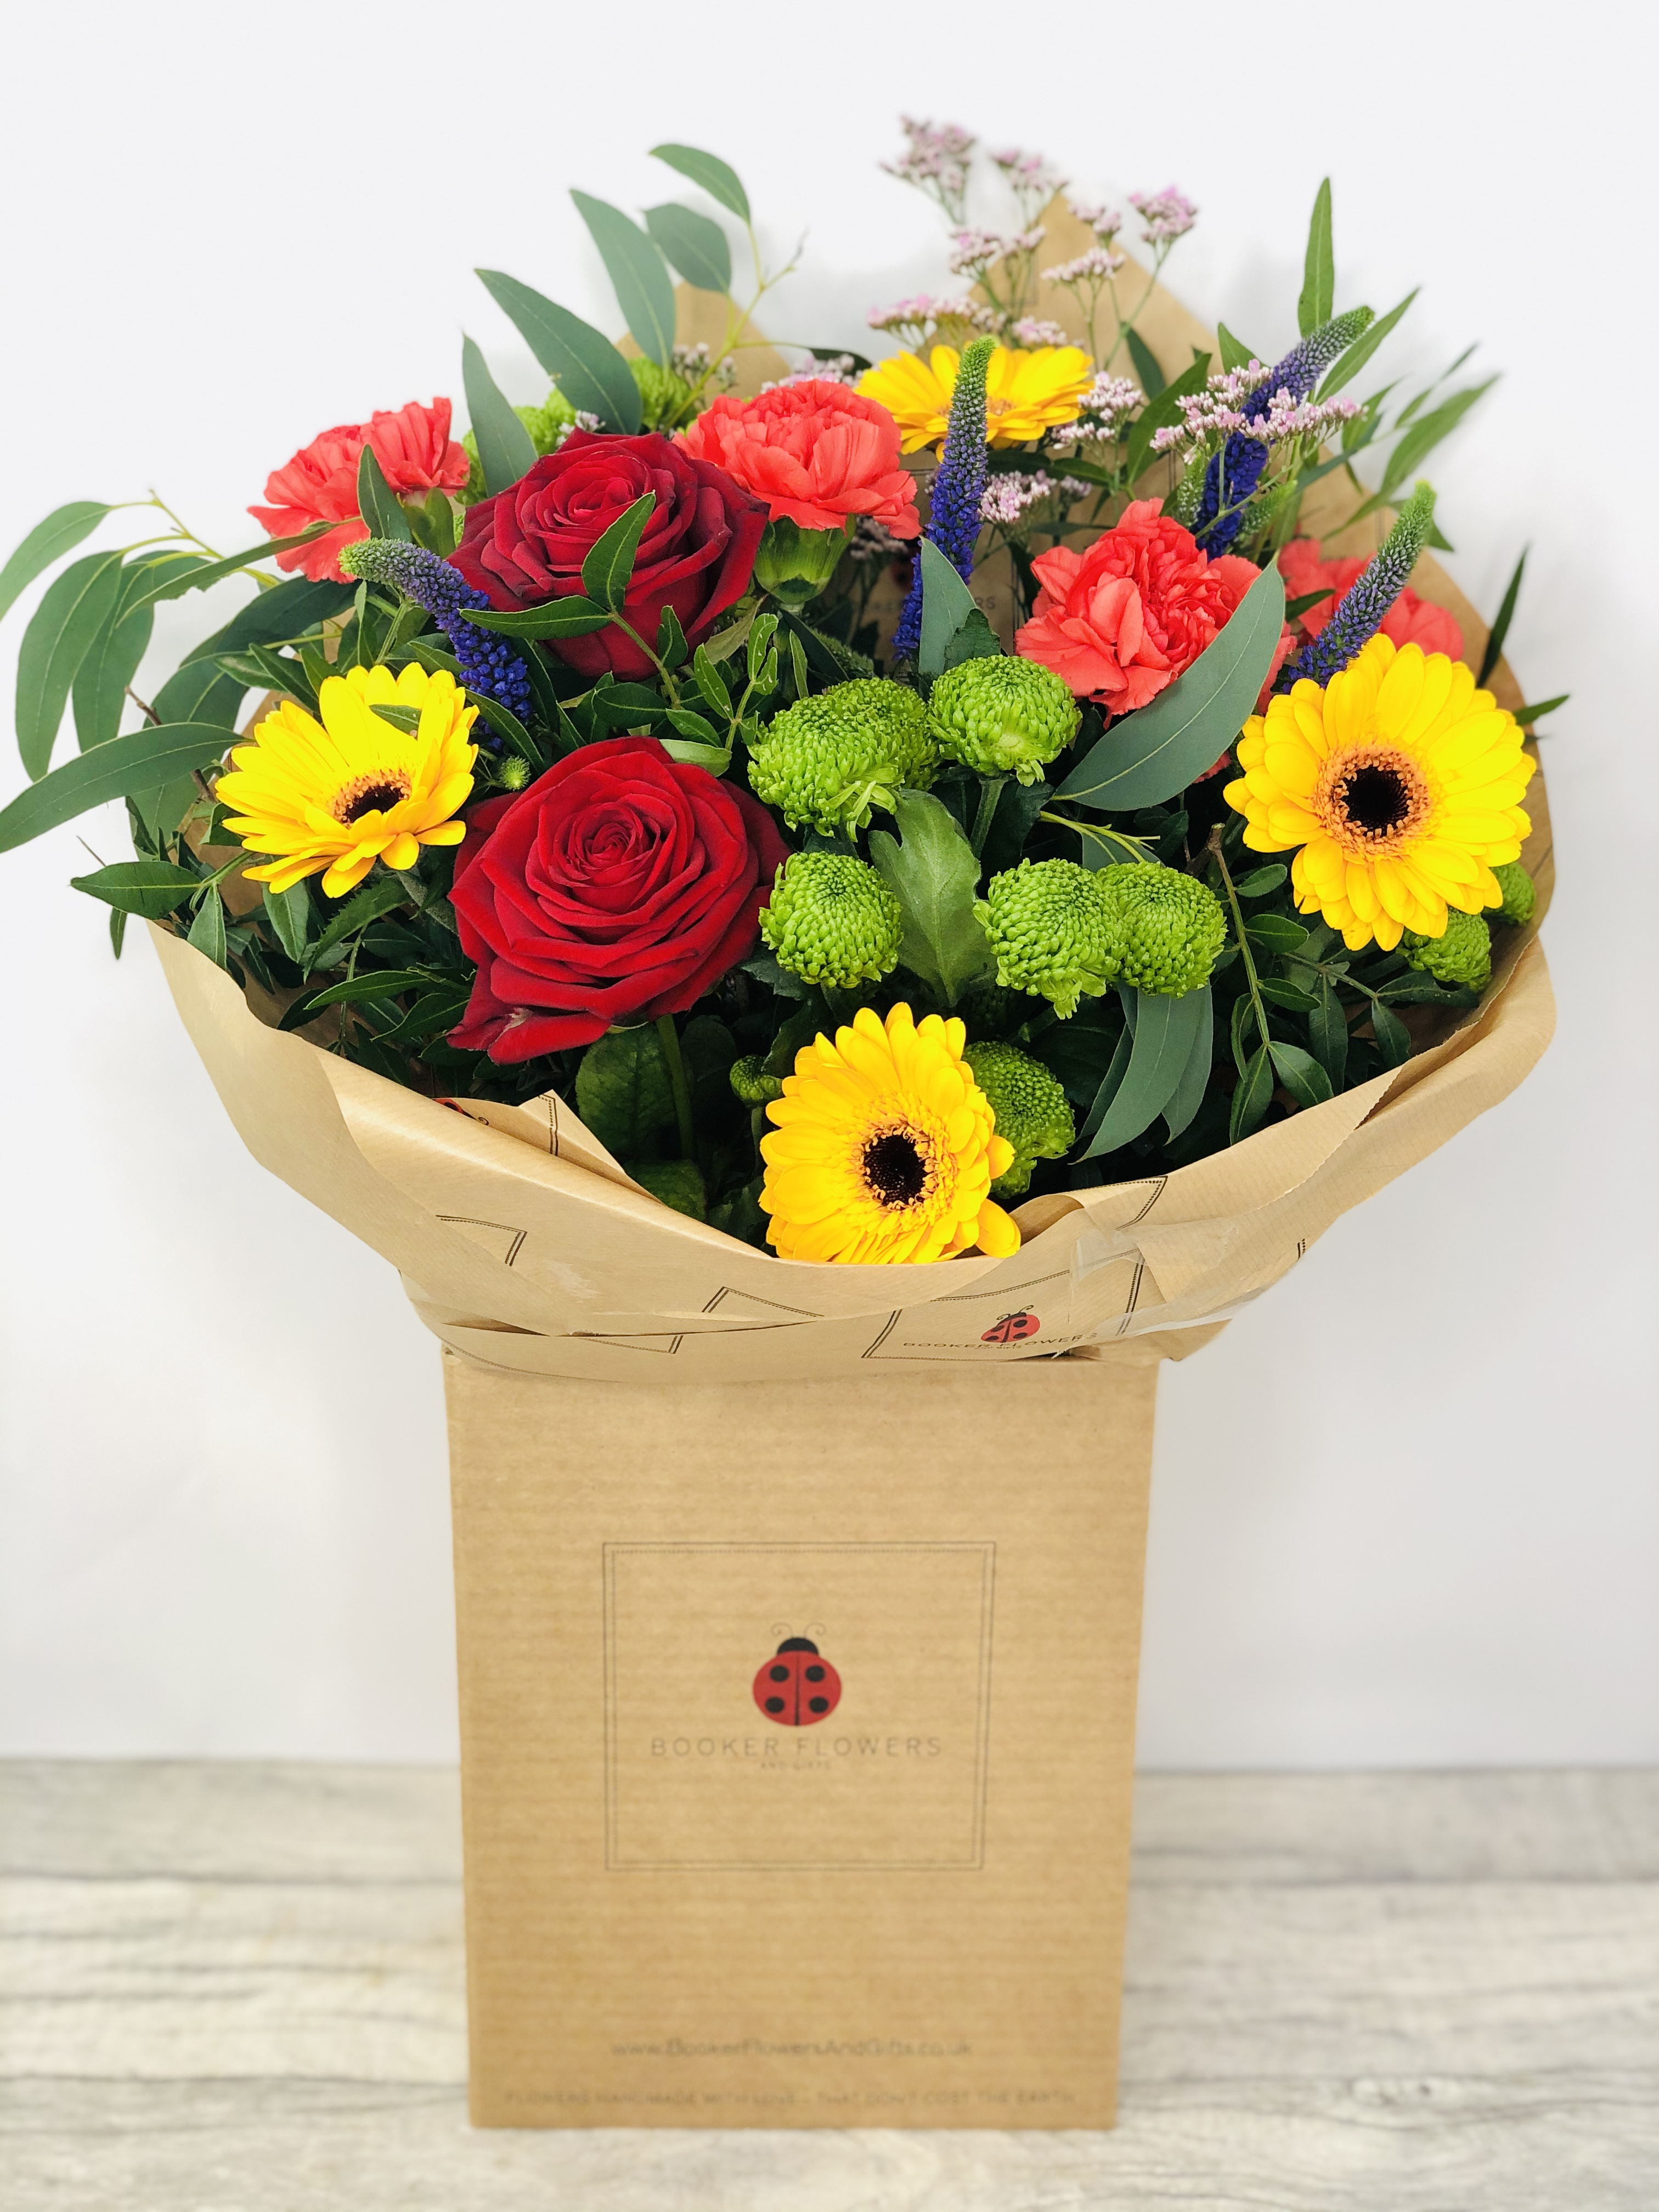 We sell a large range of Get Well Flowers and Remember we offer Flower Delivery Liverpool and we can provide Get Well Flowers for you in Liverpool - Merseyside and can organize Get Well flower deliveries for you Nationwide.  Your Get Well Flowers will be handmade by our professional Florists and delivered to your loved one by hand with a smile. Remember Booker Flowers and Gifts for Get Well Flowers delivered in Liverpool - Merseyside and beyond.We offer Flower Delivery Liverpool and same day flower delivery and all our flowers hand arranged by our Florists are backed by our 7 day freshness guarantee